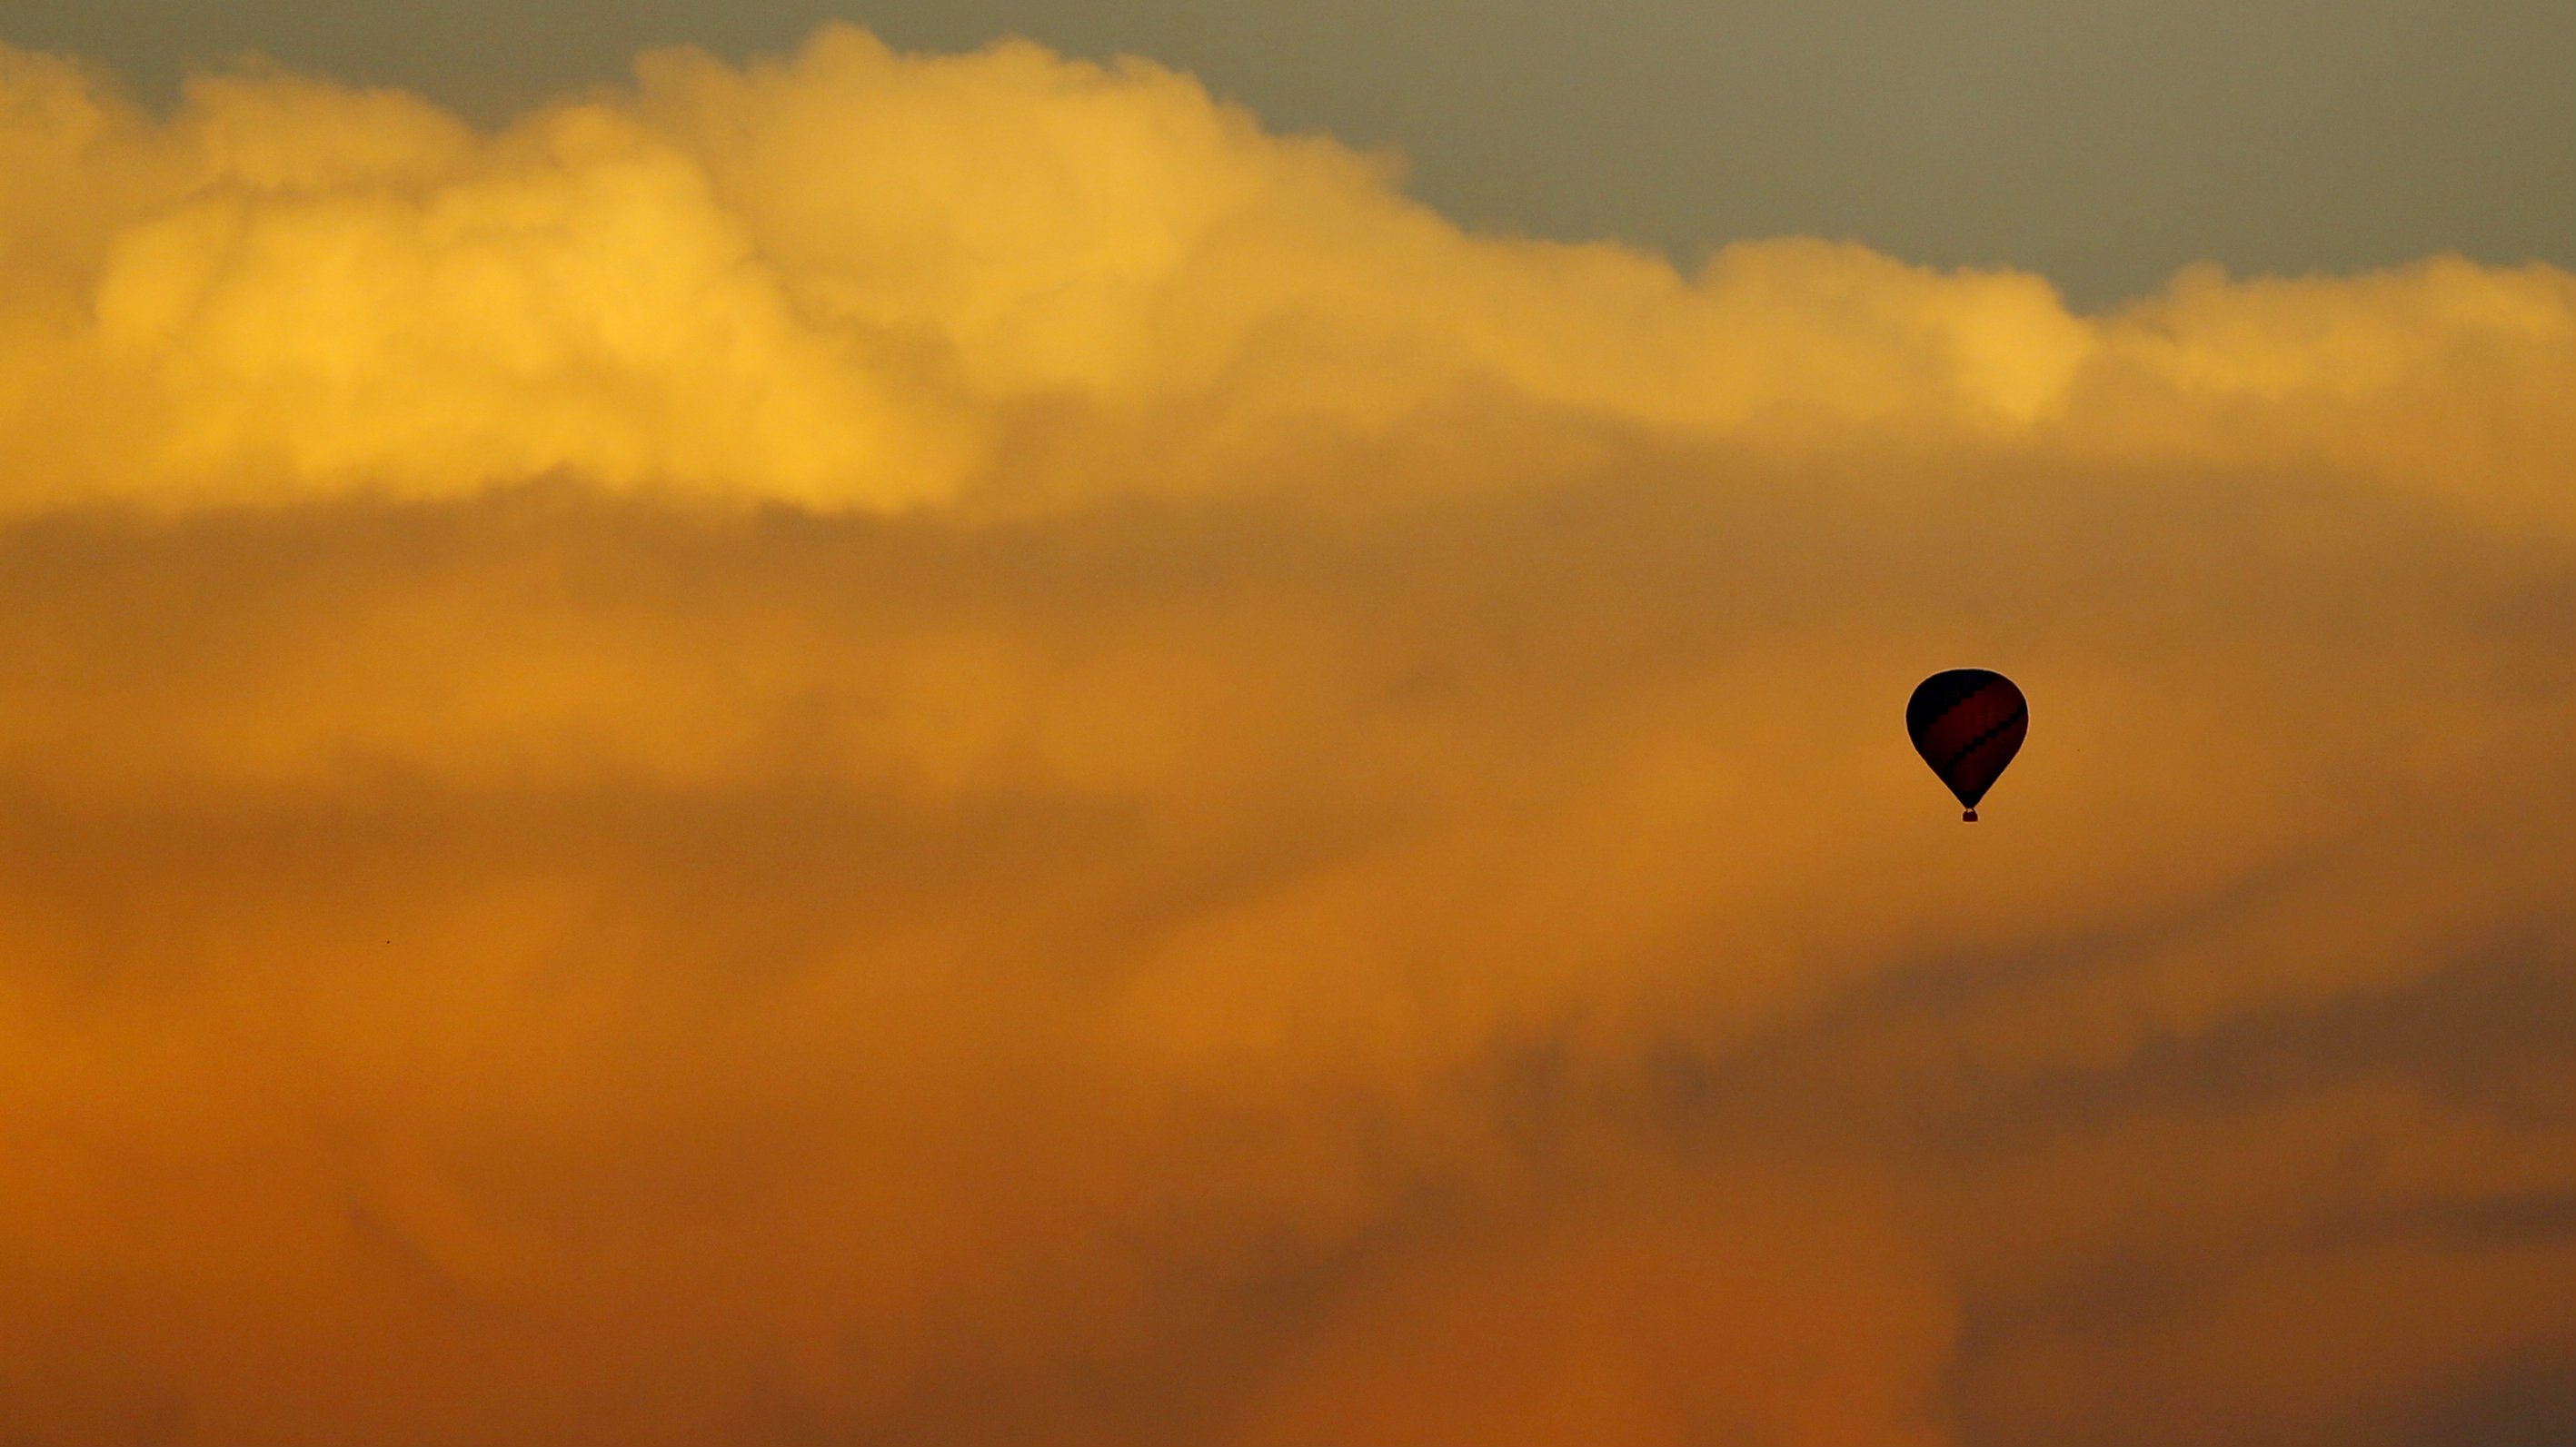 A hot air balloon floats past a distant thunderstorm after sunset near San Diego, California, August 15, 2014.